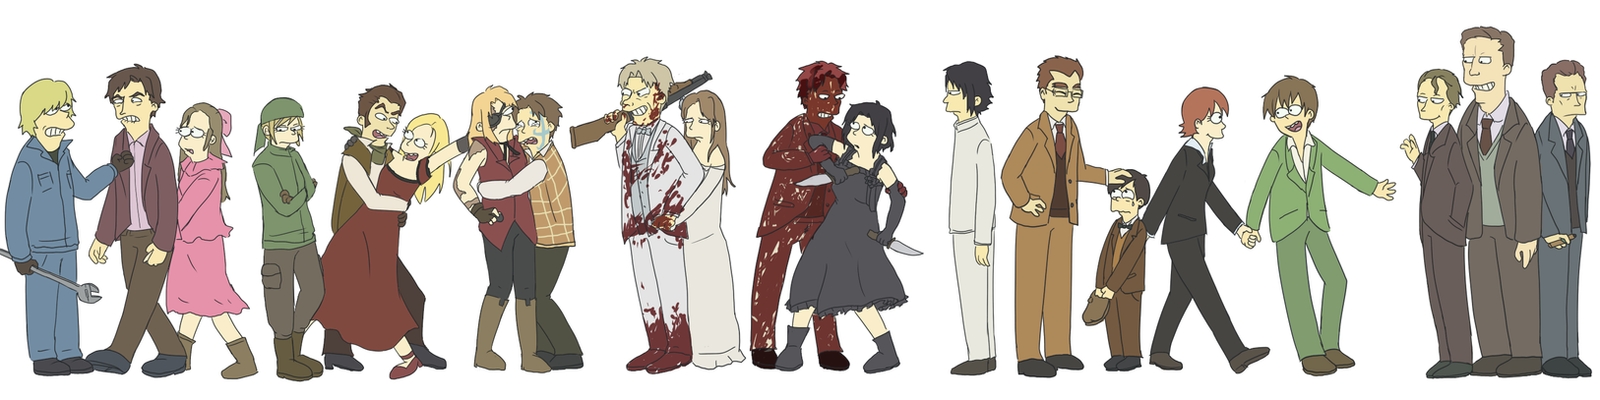 baccano_groening_style_by_yazuri-d474qti.png